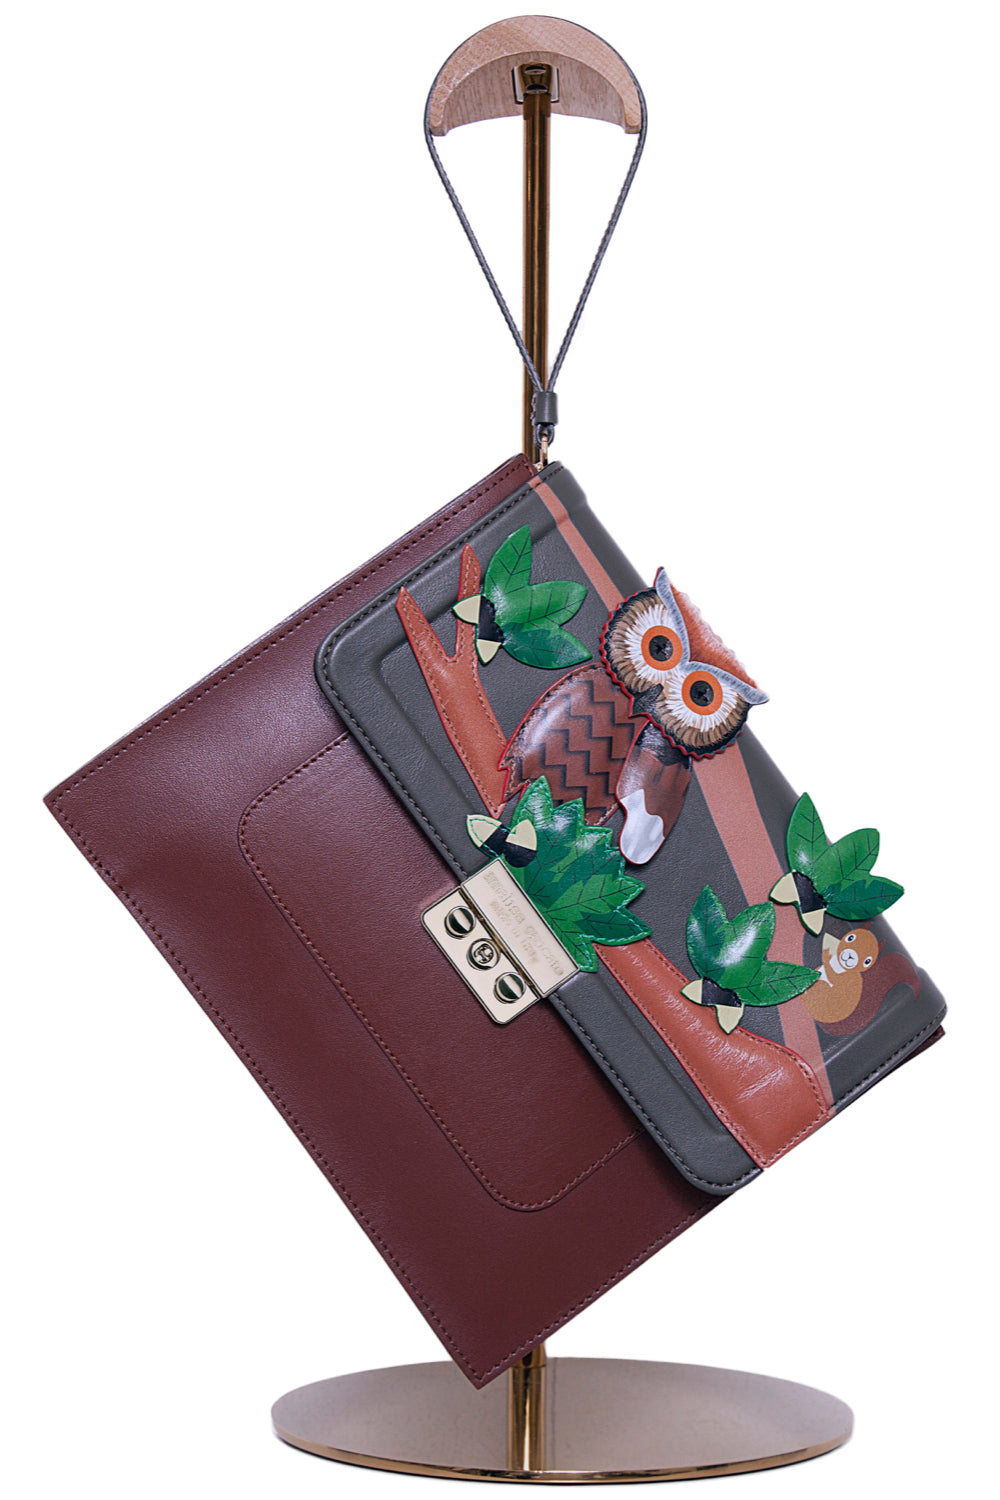 Owl Look Leather Envelope Clutch - The Bobby Boga